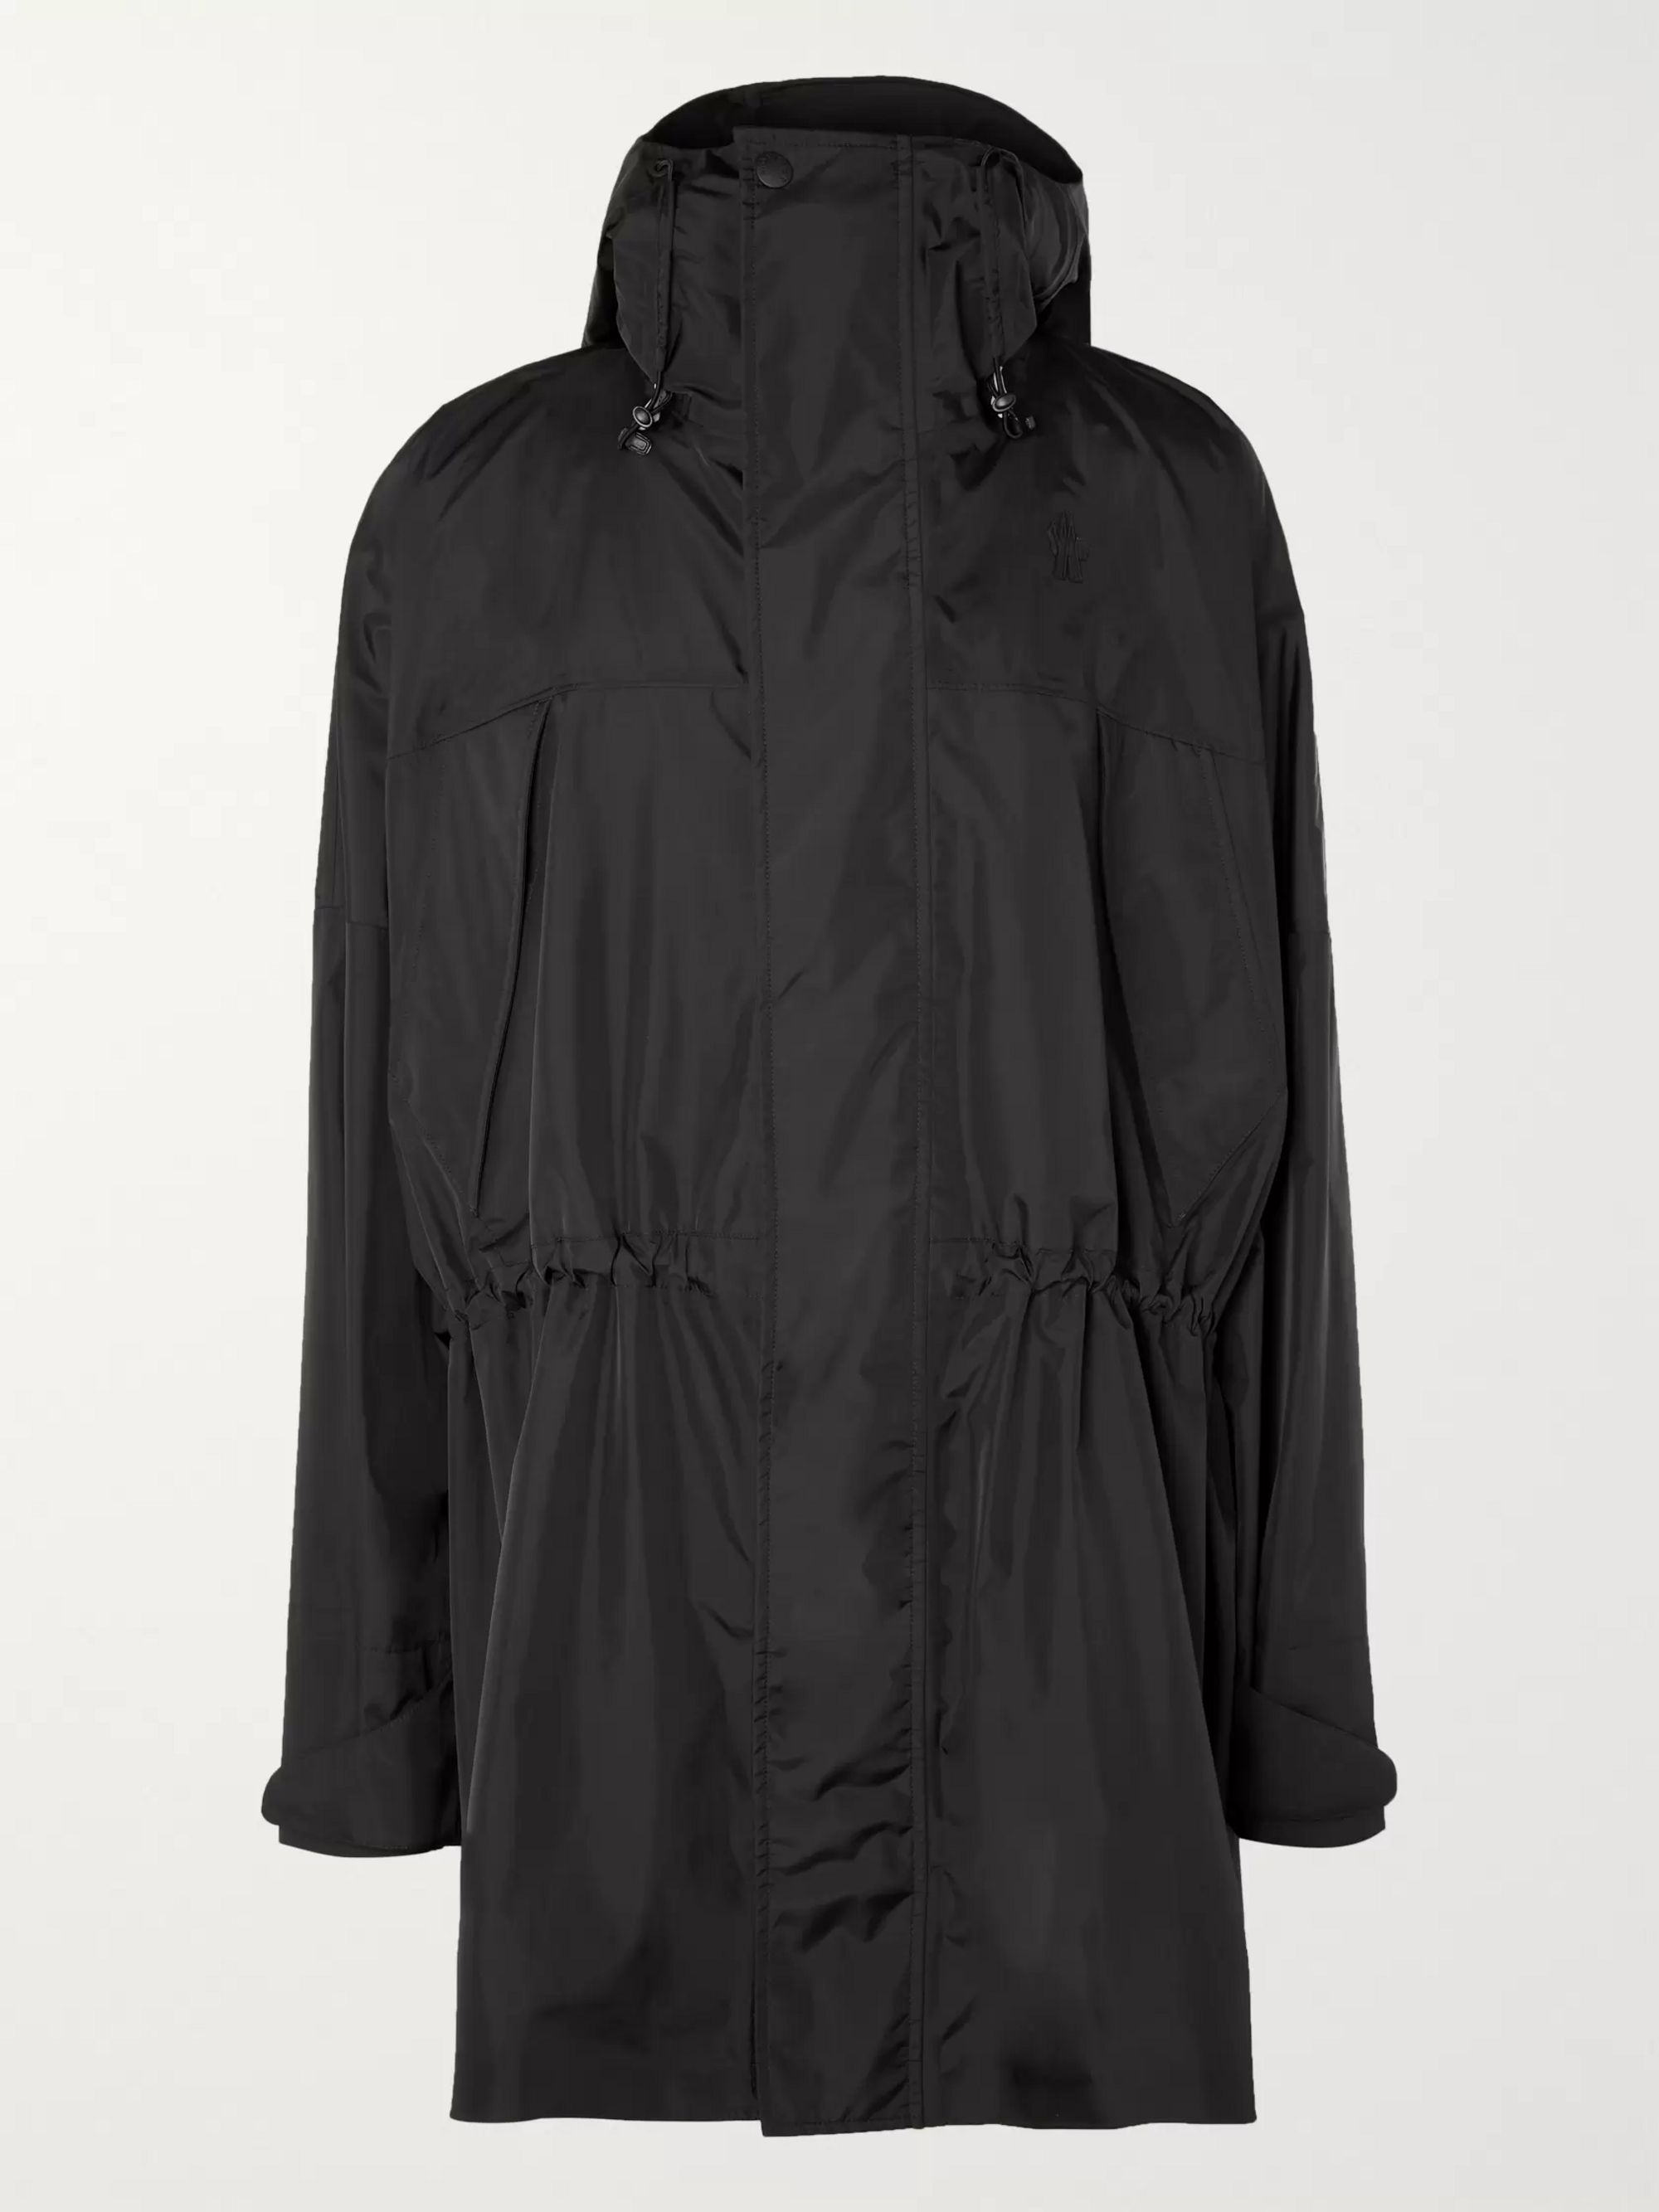 Moncler Genius Hooded Shell Coat